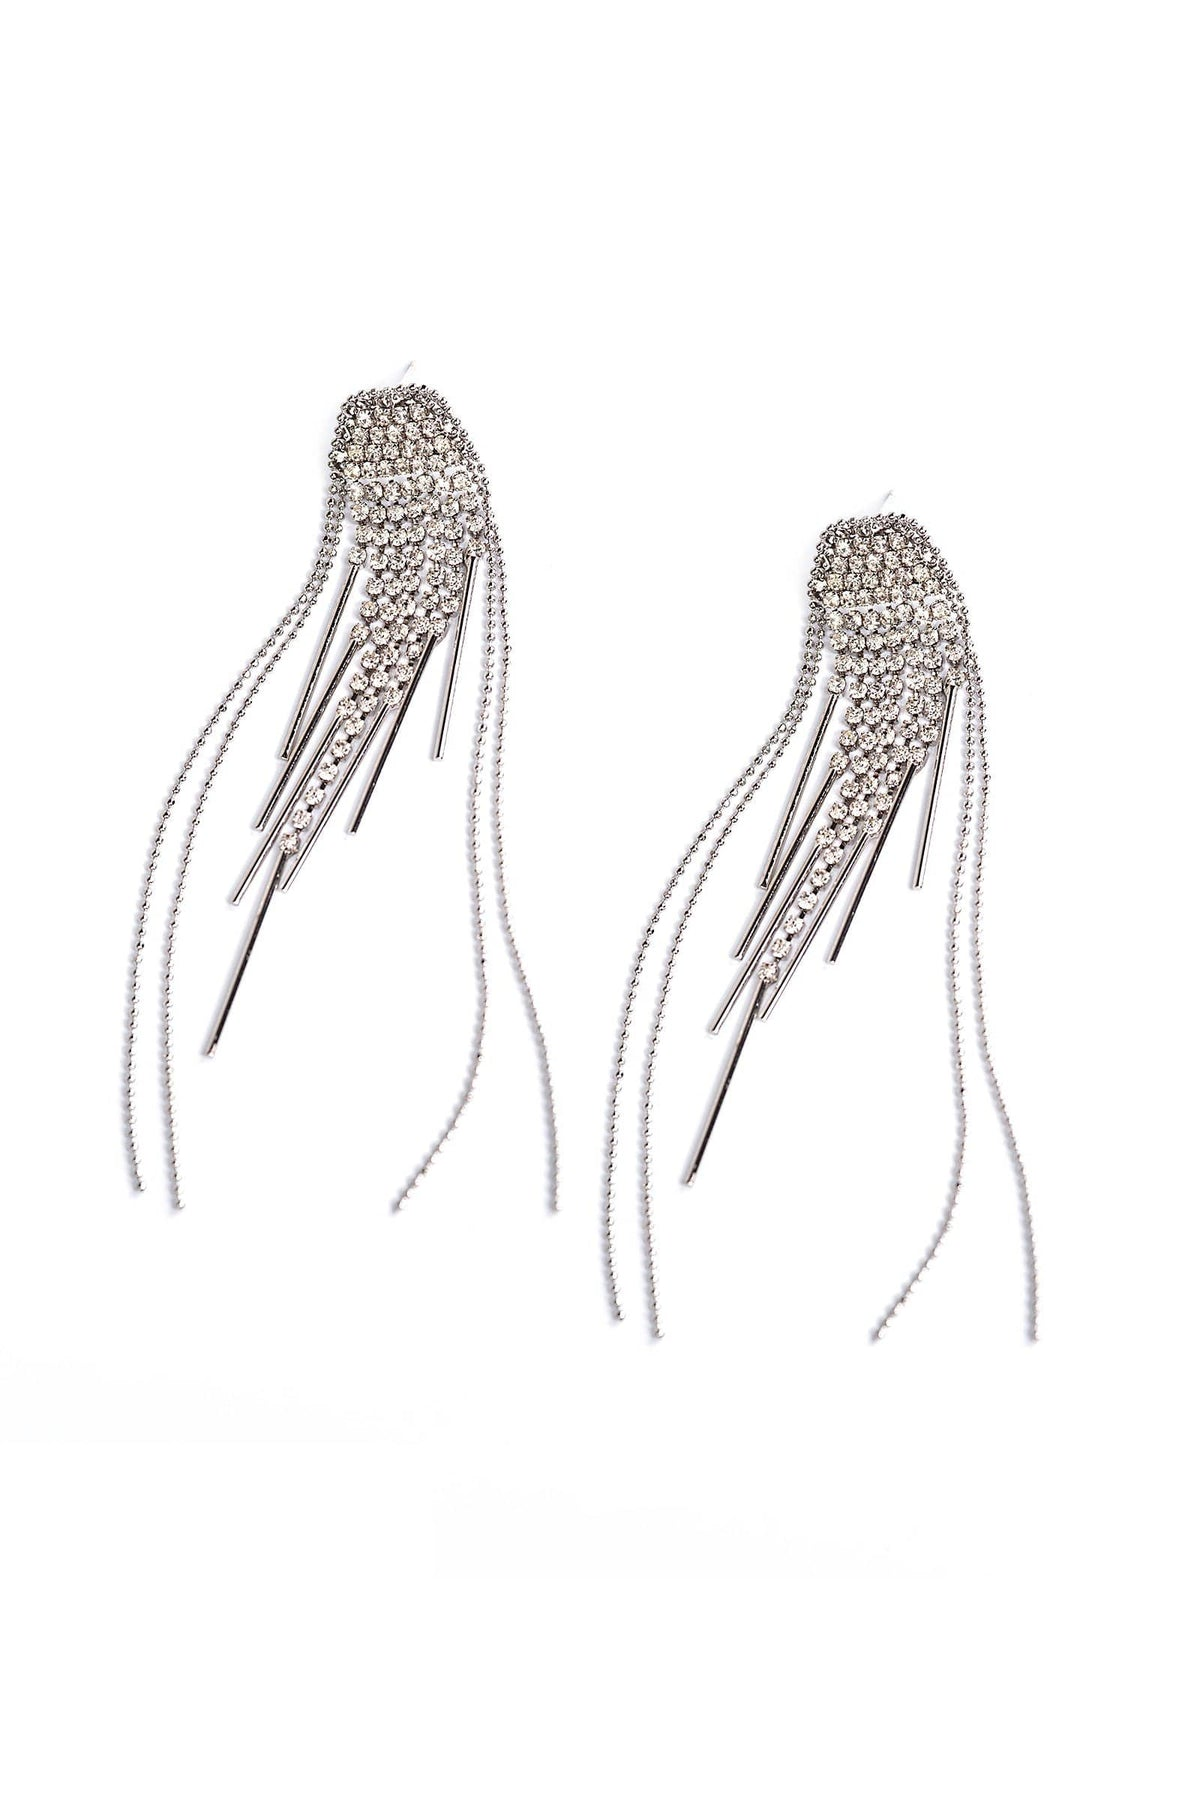 Silver earrings with hanging crystal threads | J.ING Women's Accessories